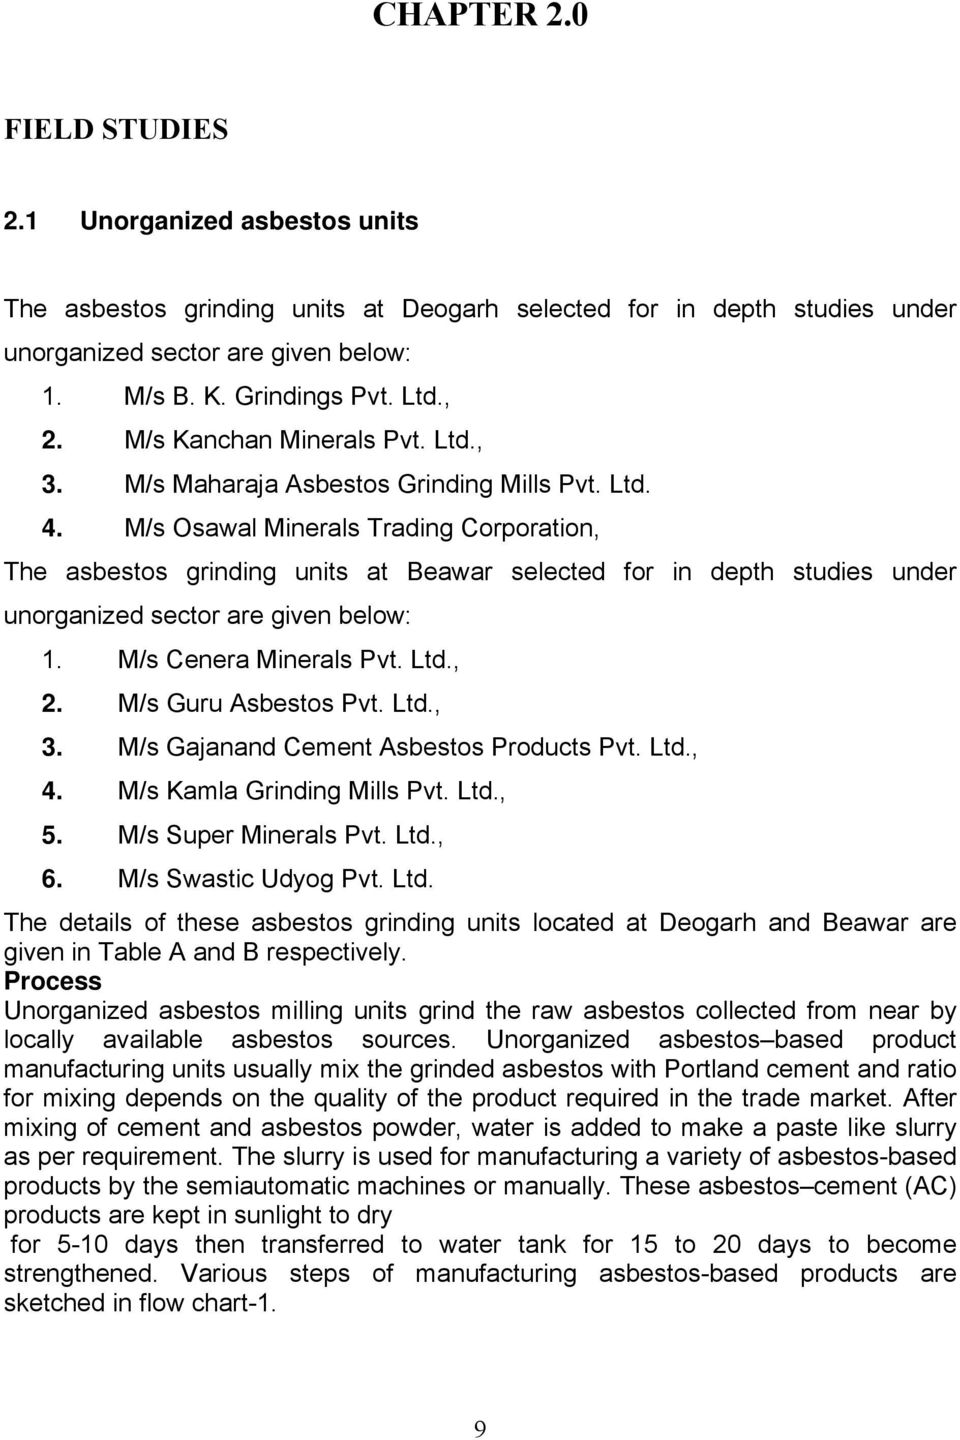 M/s Osawal Minerals Trading Corporation, The asbestos grinding units at Beawar selected for in depth studies under unorganized sector are given below: 1. M/s Cenera Minerals Pvt. Ltd., 2.